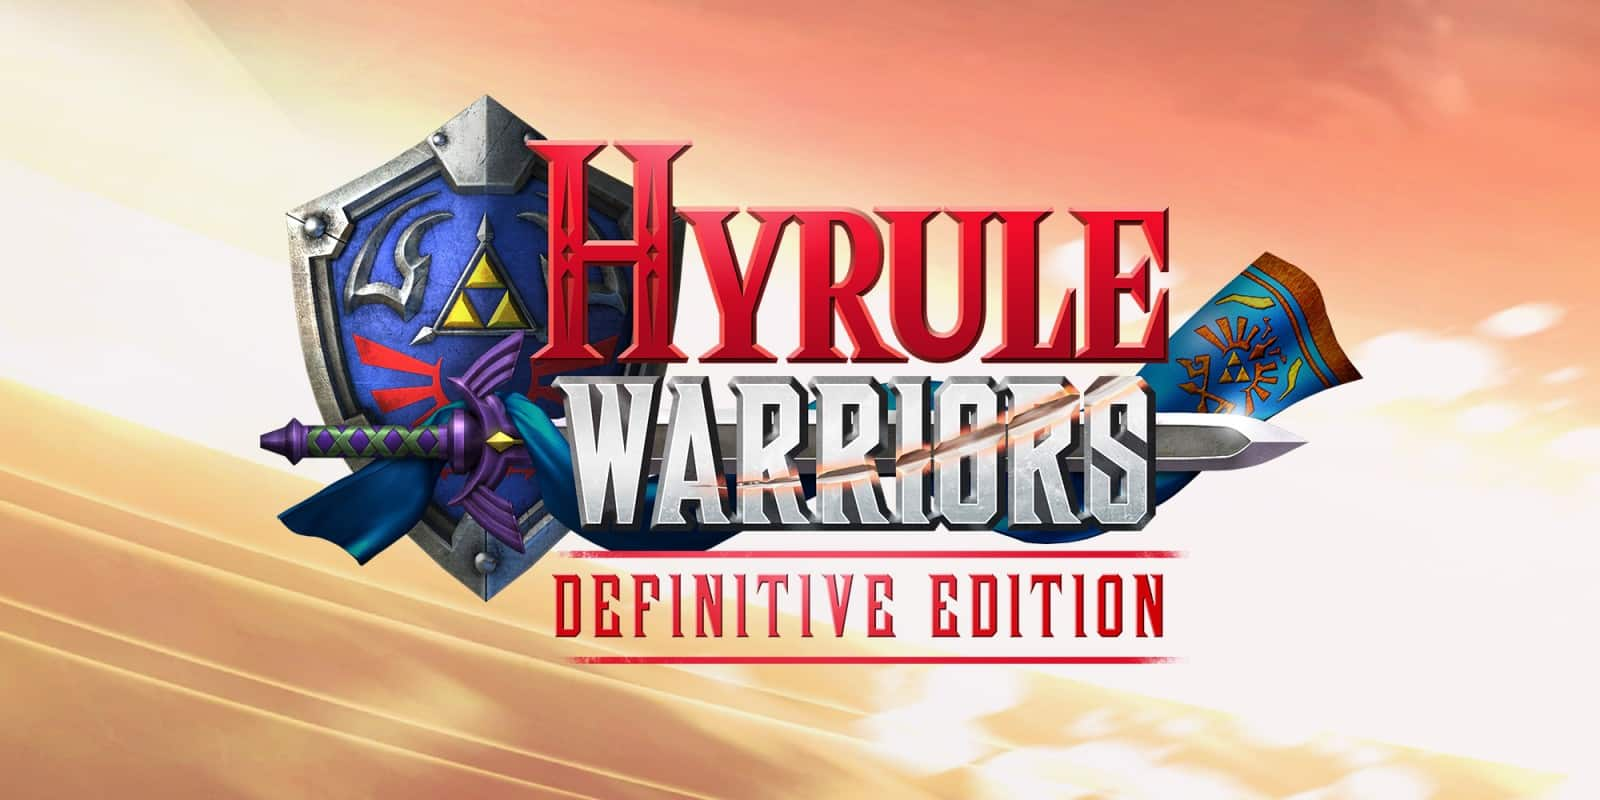 Hyrule Warriors Definitive Edition Announced For Switch The Game Of Nerds